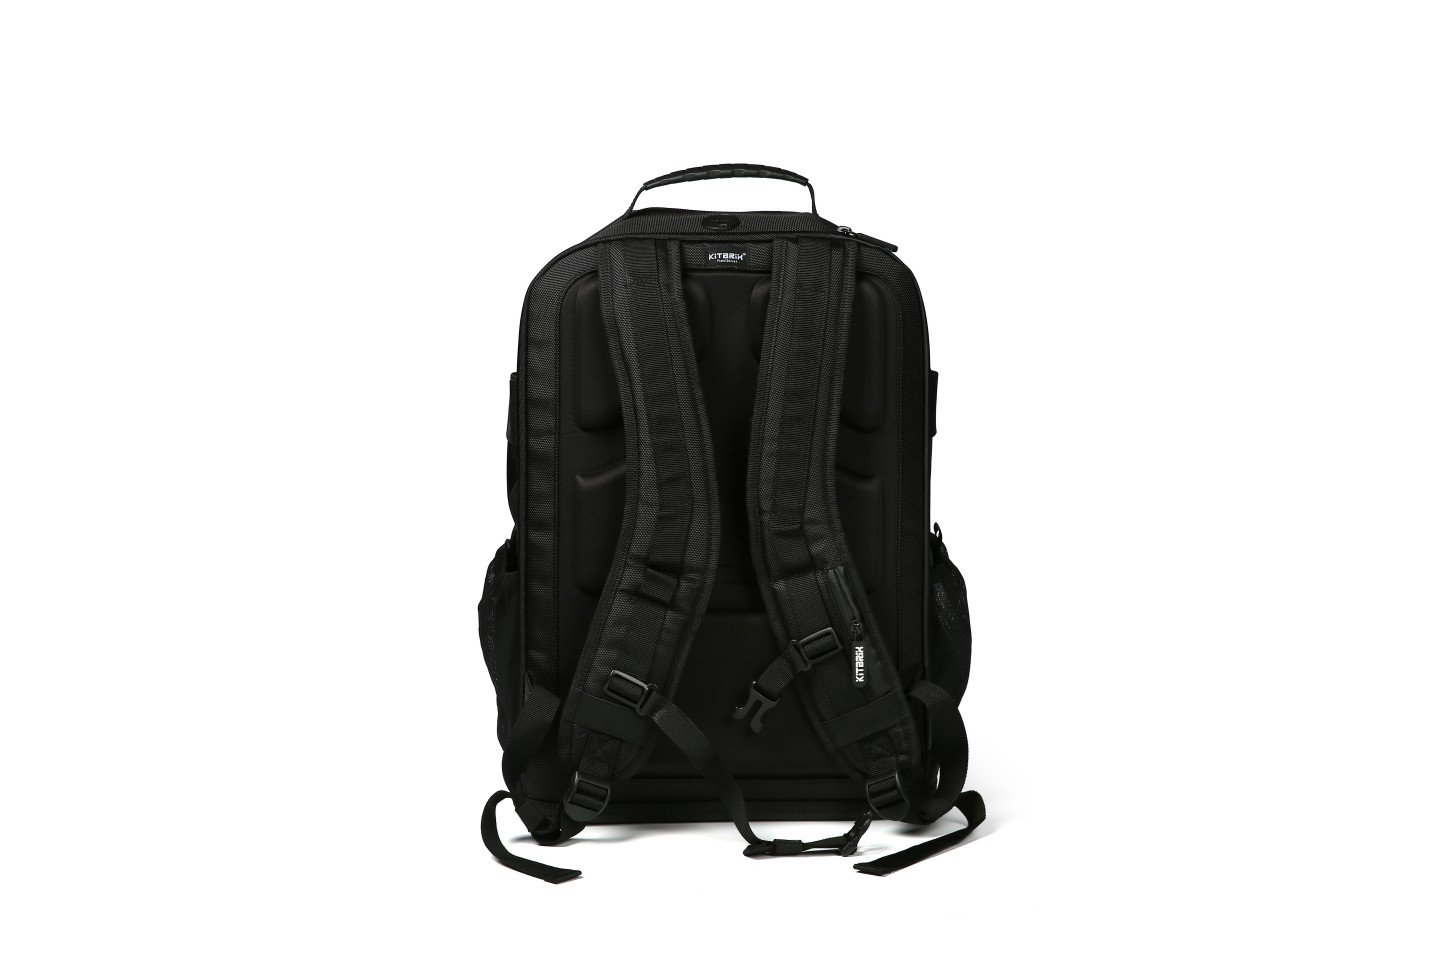 CityBrix Commuter Bag with free rain cover